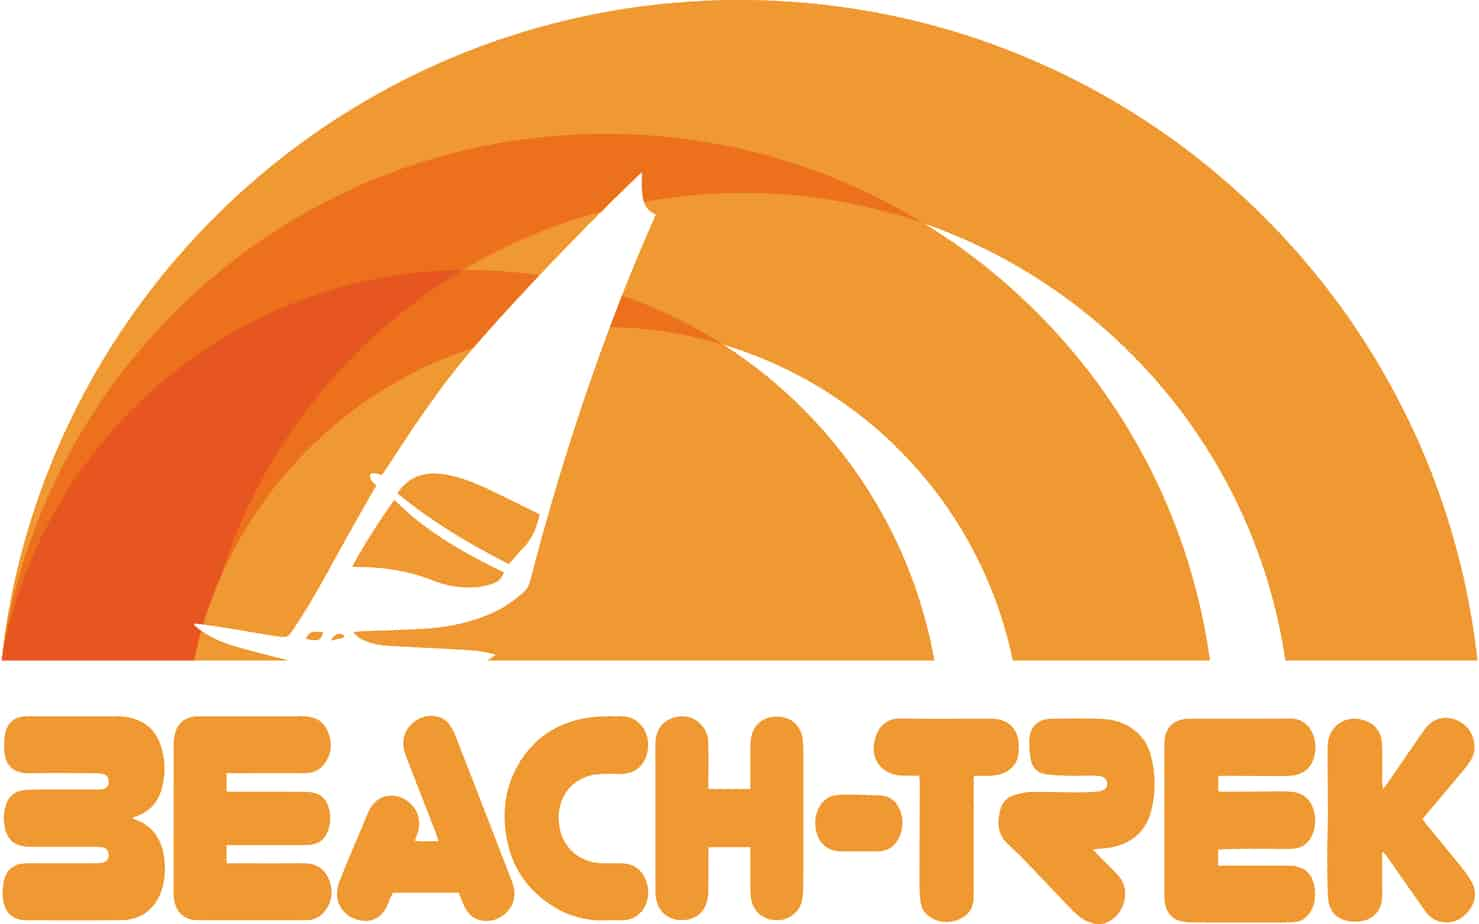 Beach Trek | Beach Club Holidays